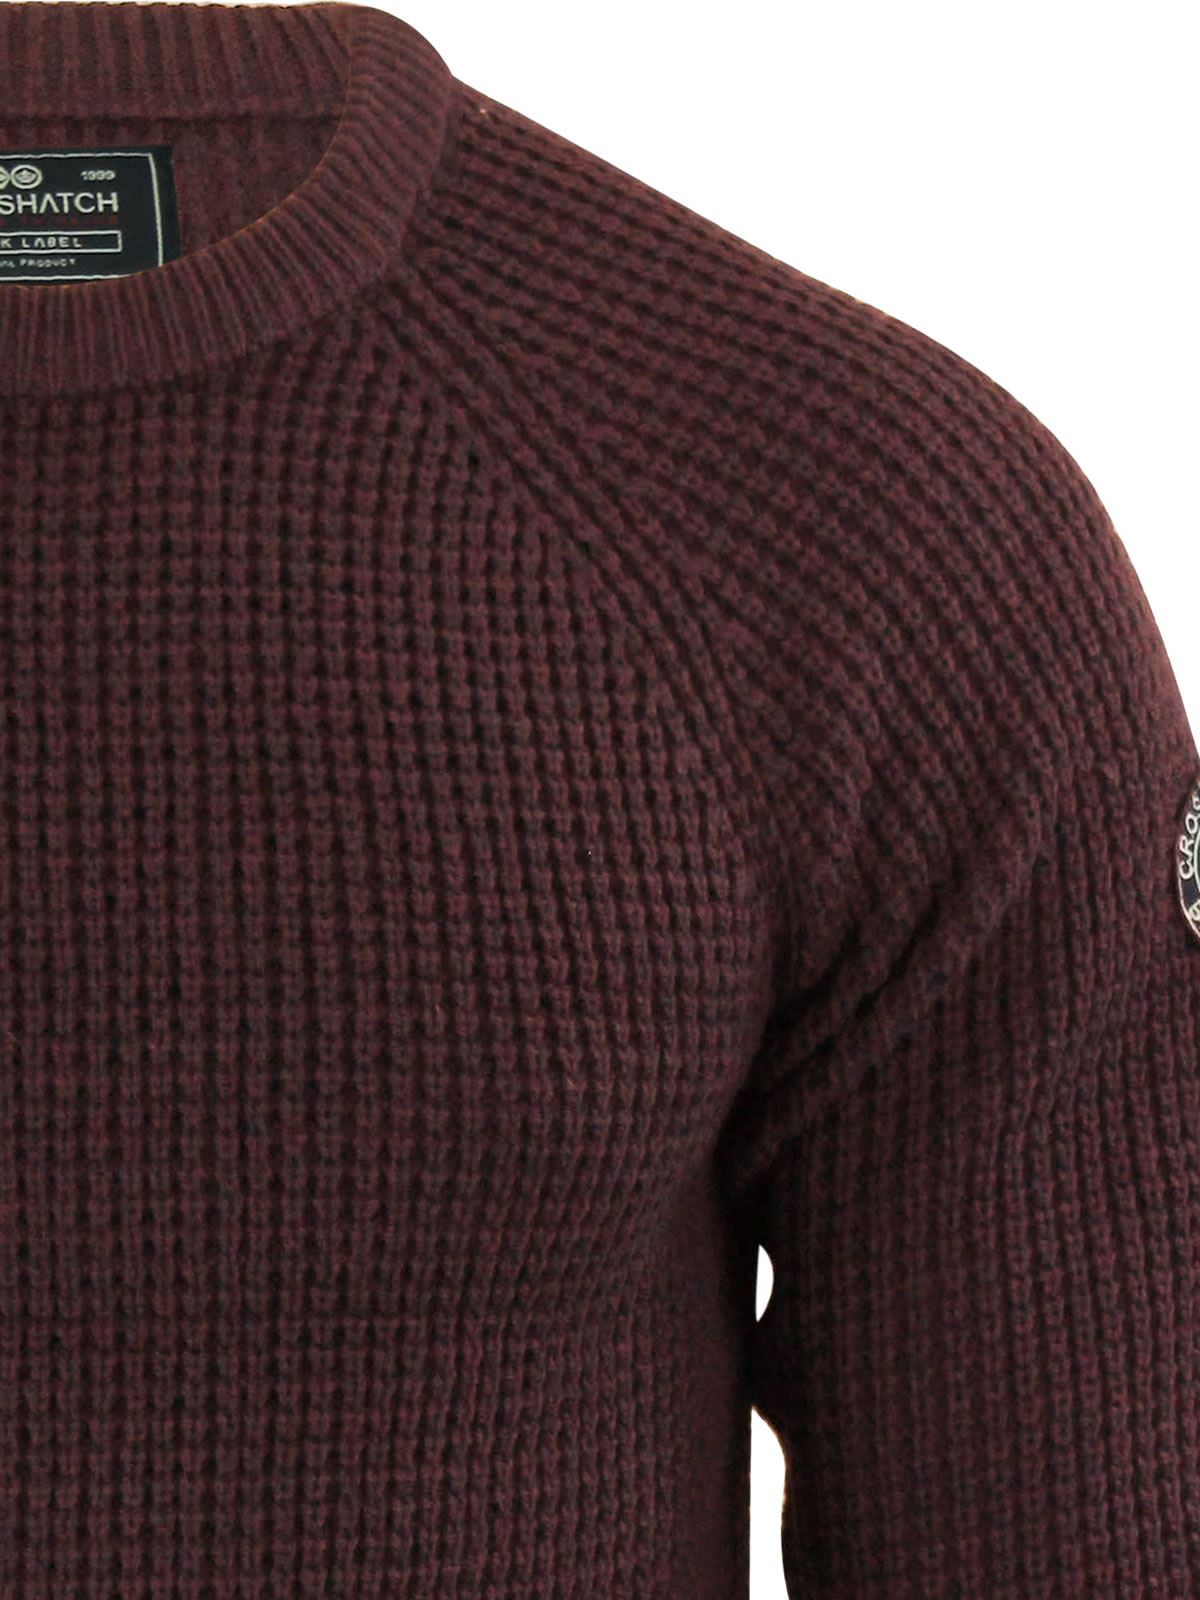 Mens-Jumper-Crosshatch-General-Waffle-Knitted-Crew-Neck-Wool-Mix-Sweater thumbnail 4